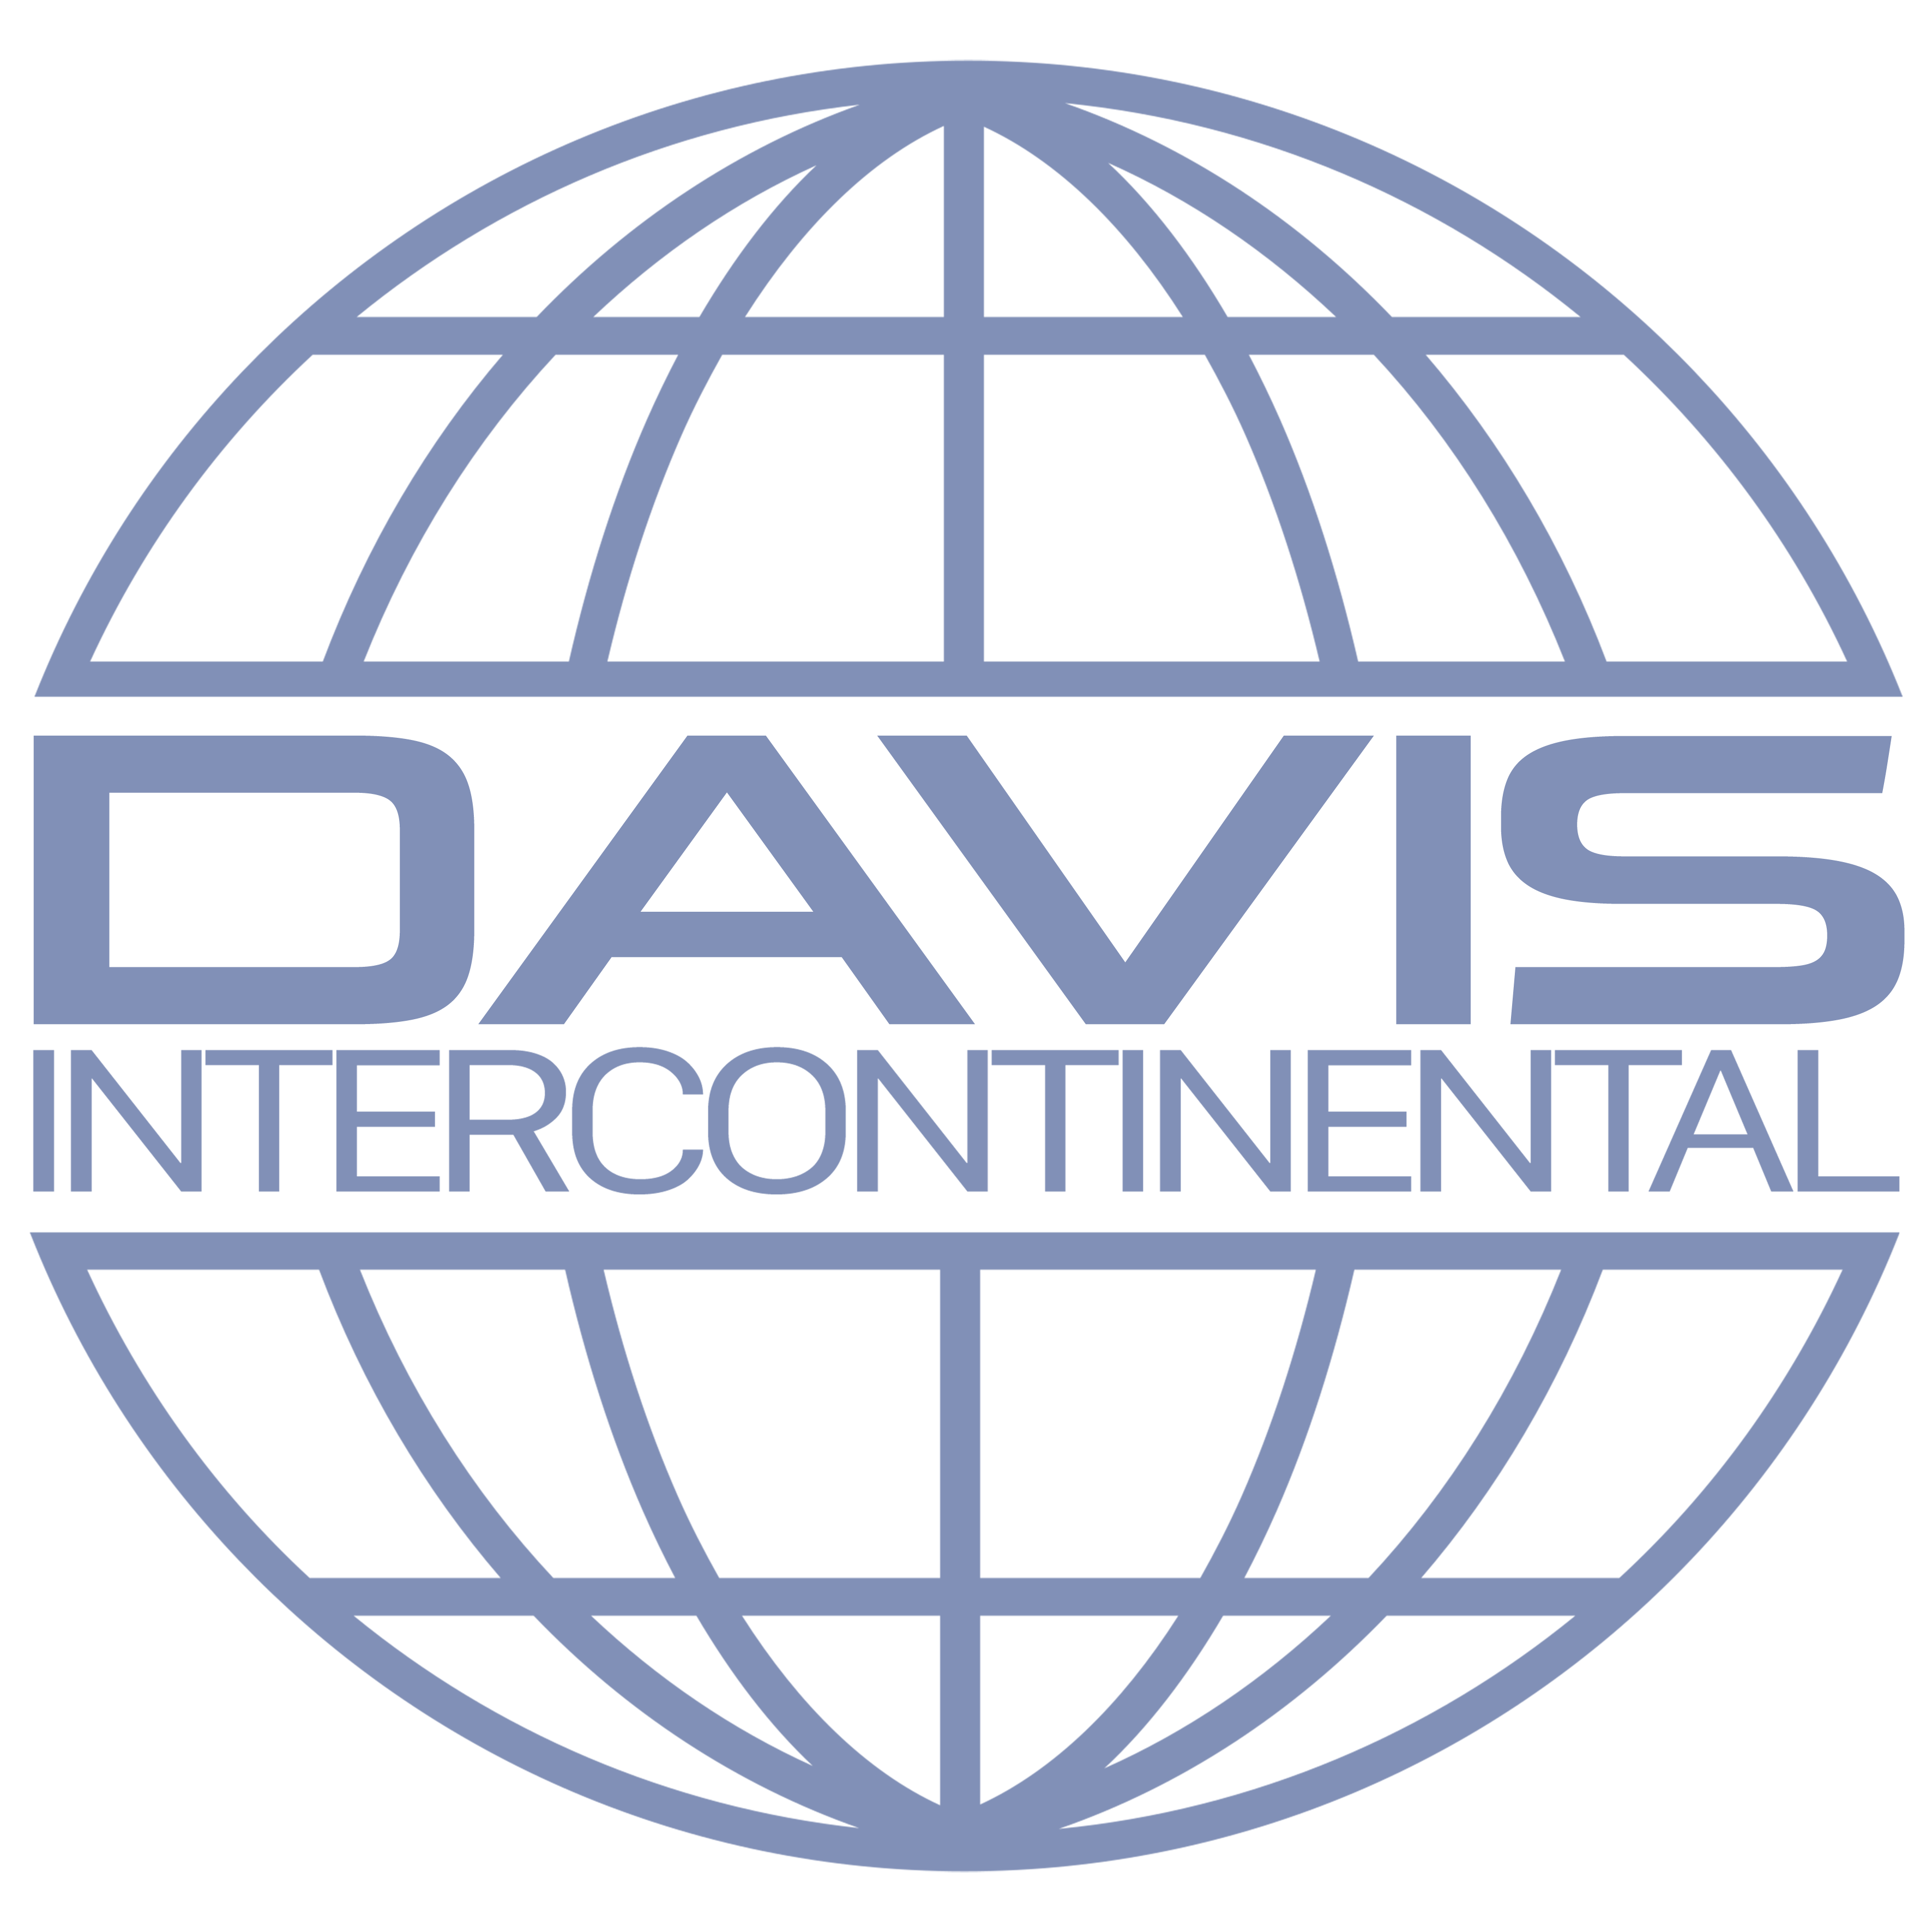 davis intercontinental logo